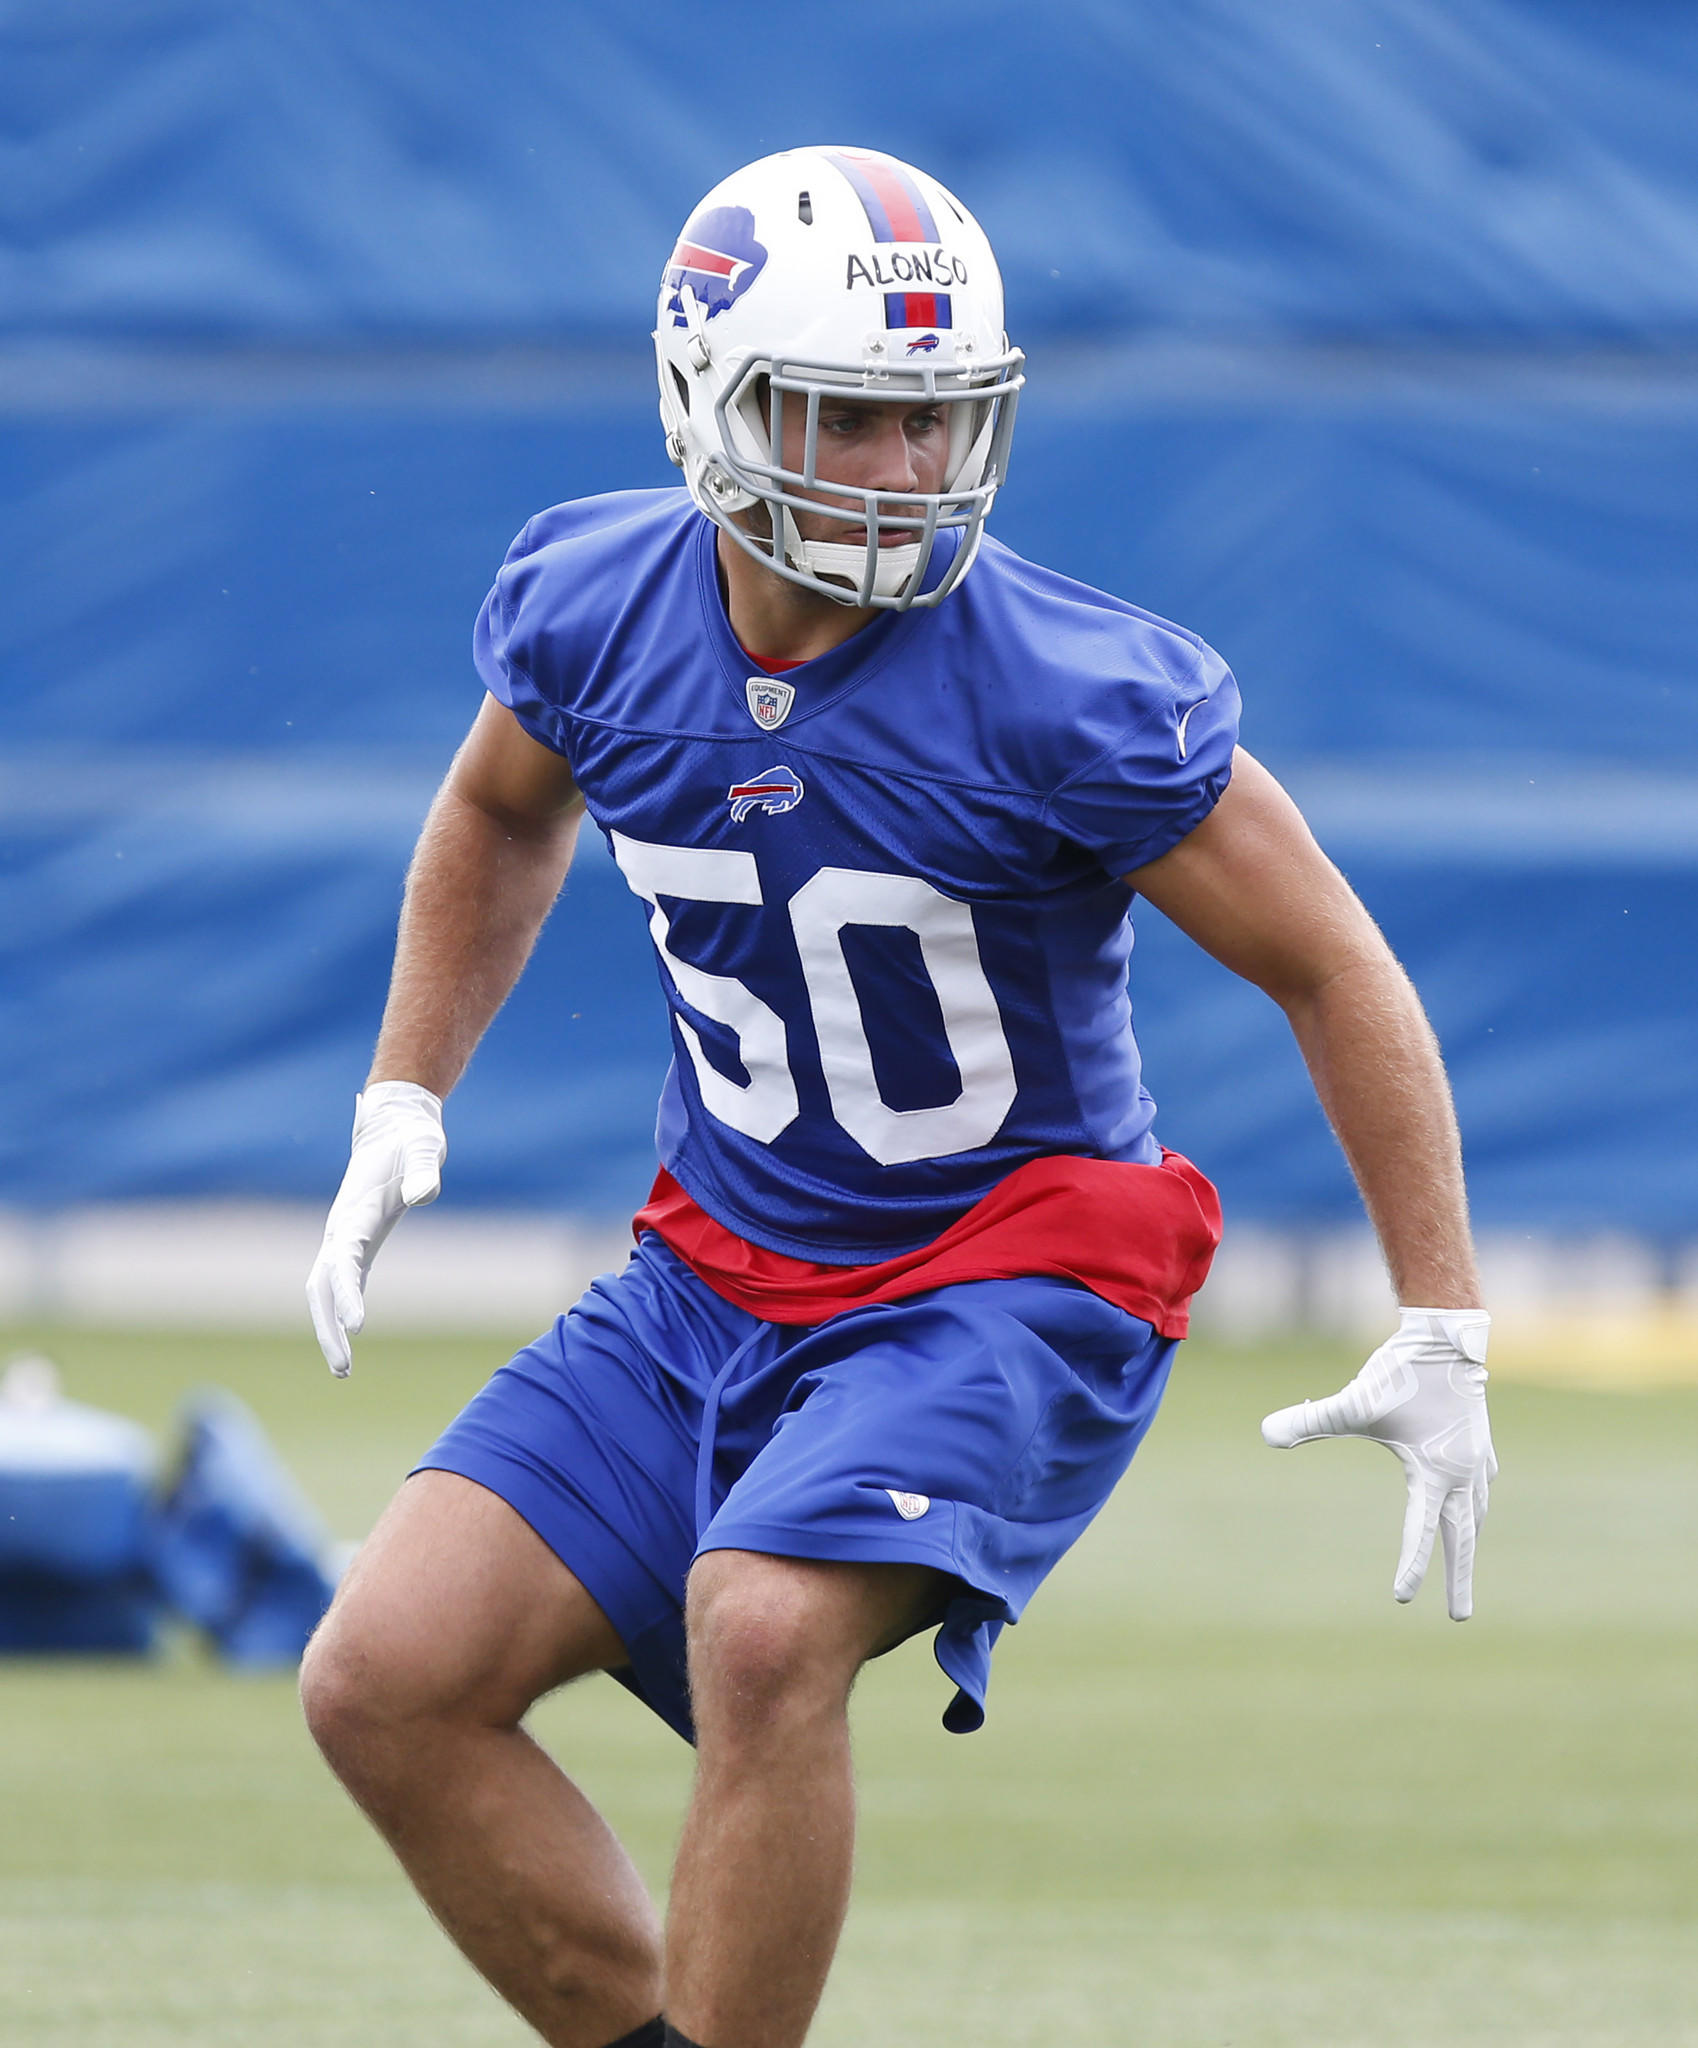 Bills linebacker Kiko Alonso performs a drill during the Bills minicamp.